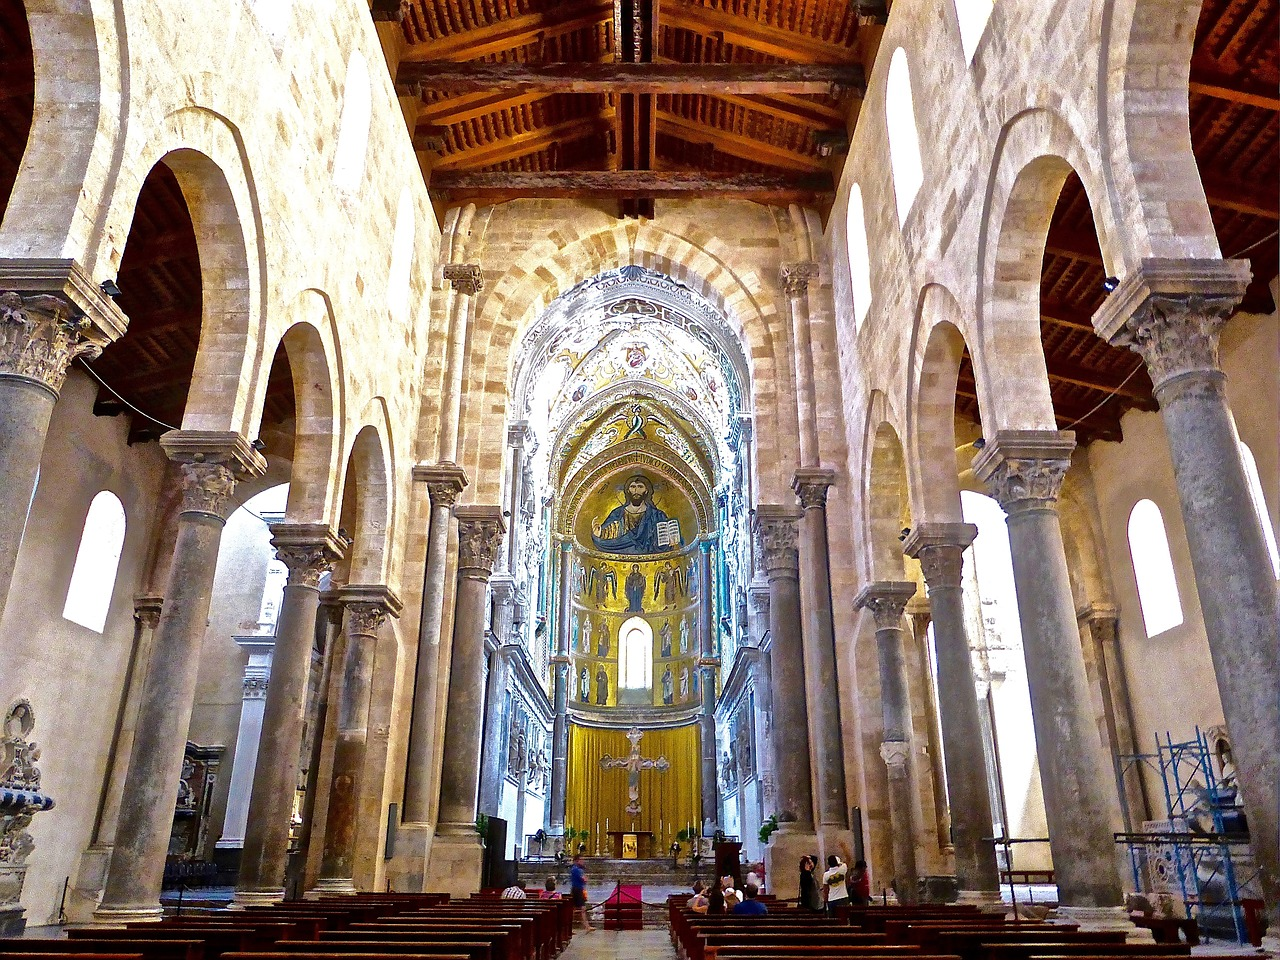 Arabo-Norman cathedrals